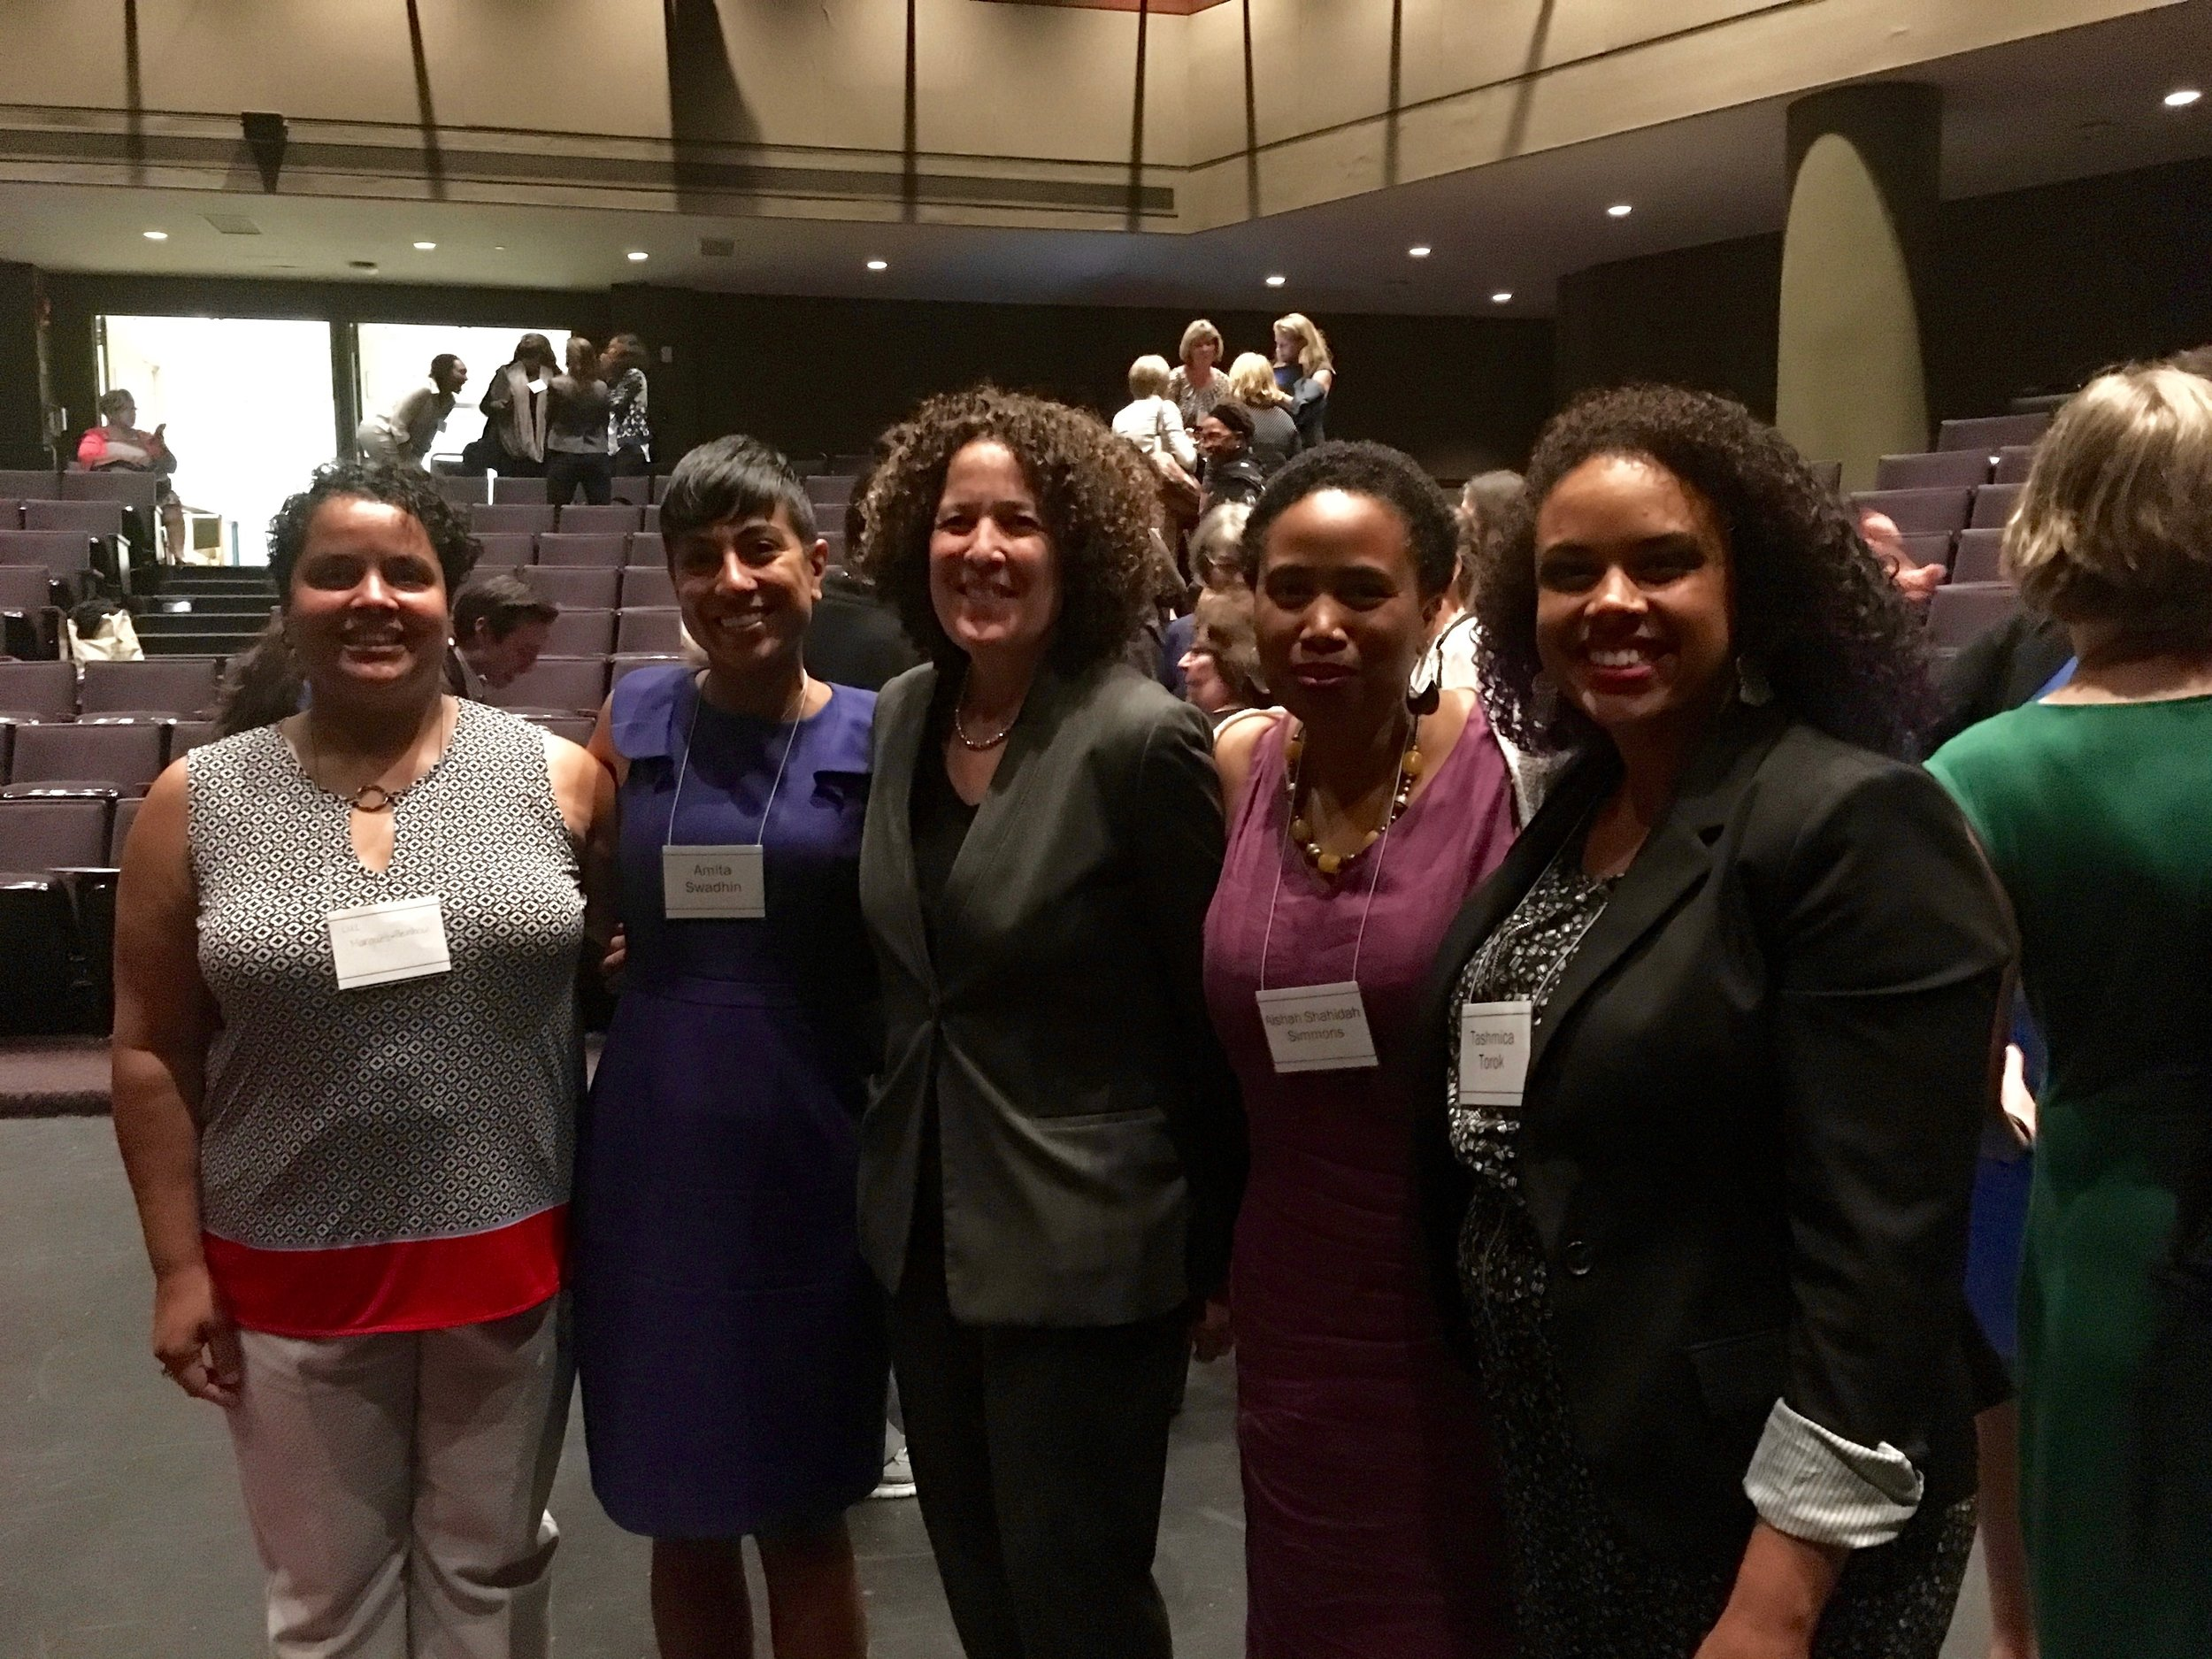 With Just Beginnings Collaborative Fellows and Ovw Director Bea Hanson at Reimagining, Reinvigorating and Moving Forward to End Sexual Assault, Domestic Violence, Dating Violence, and Stalking